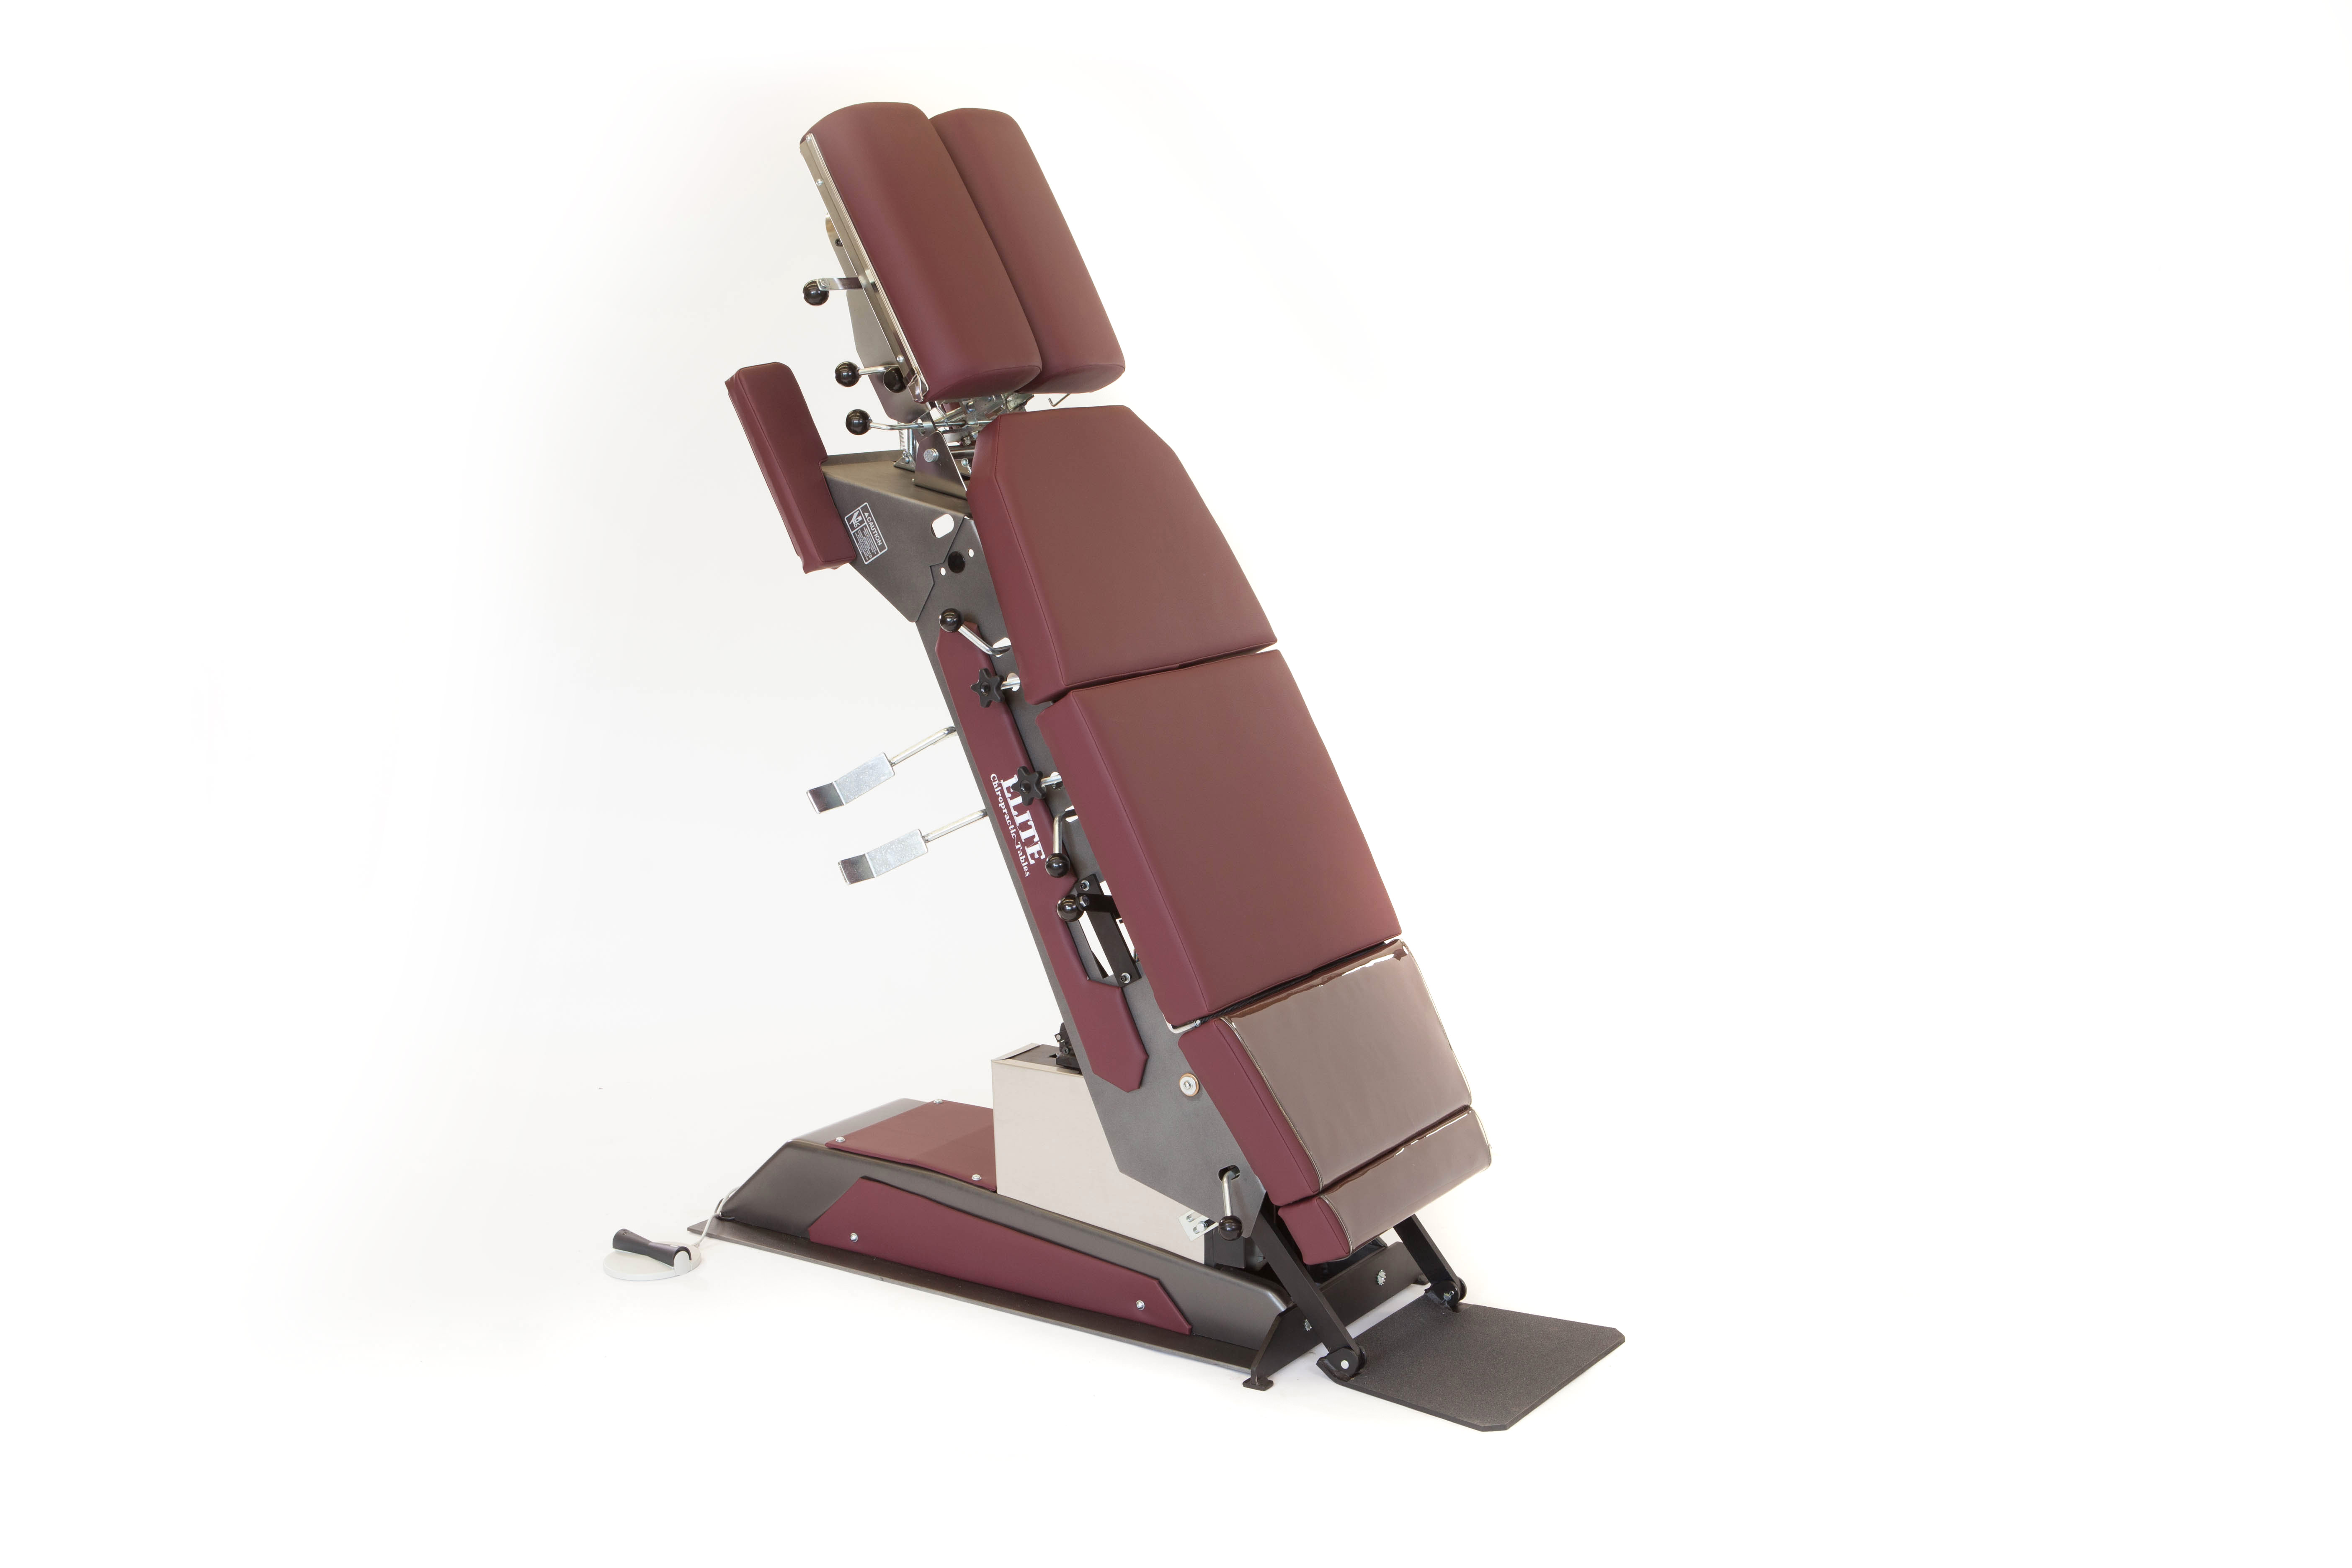 Wondrous Elite Chiropractic Tables The Workhorse Of The Industry Home Interior And Landscaping Elinuenasavecom